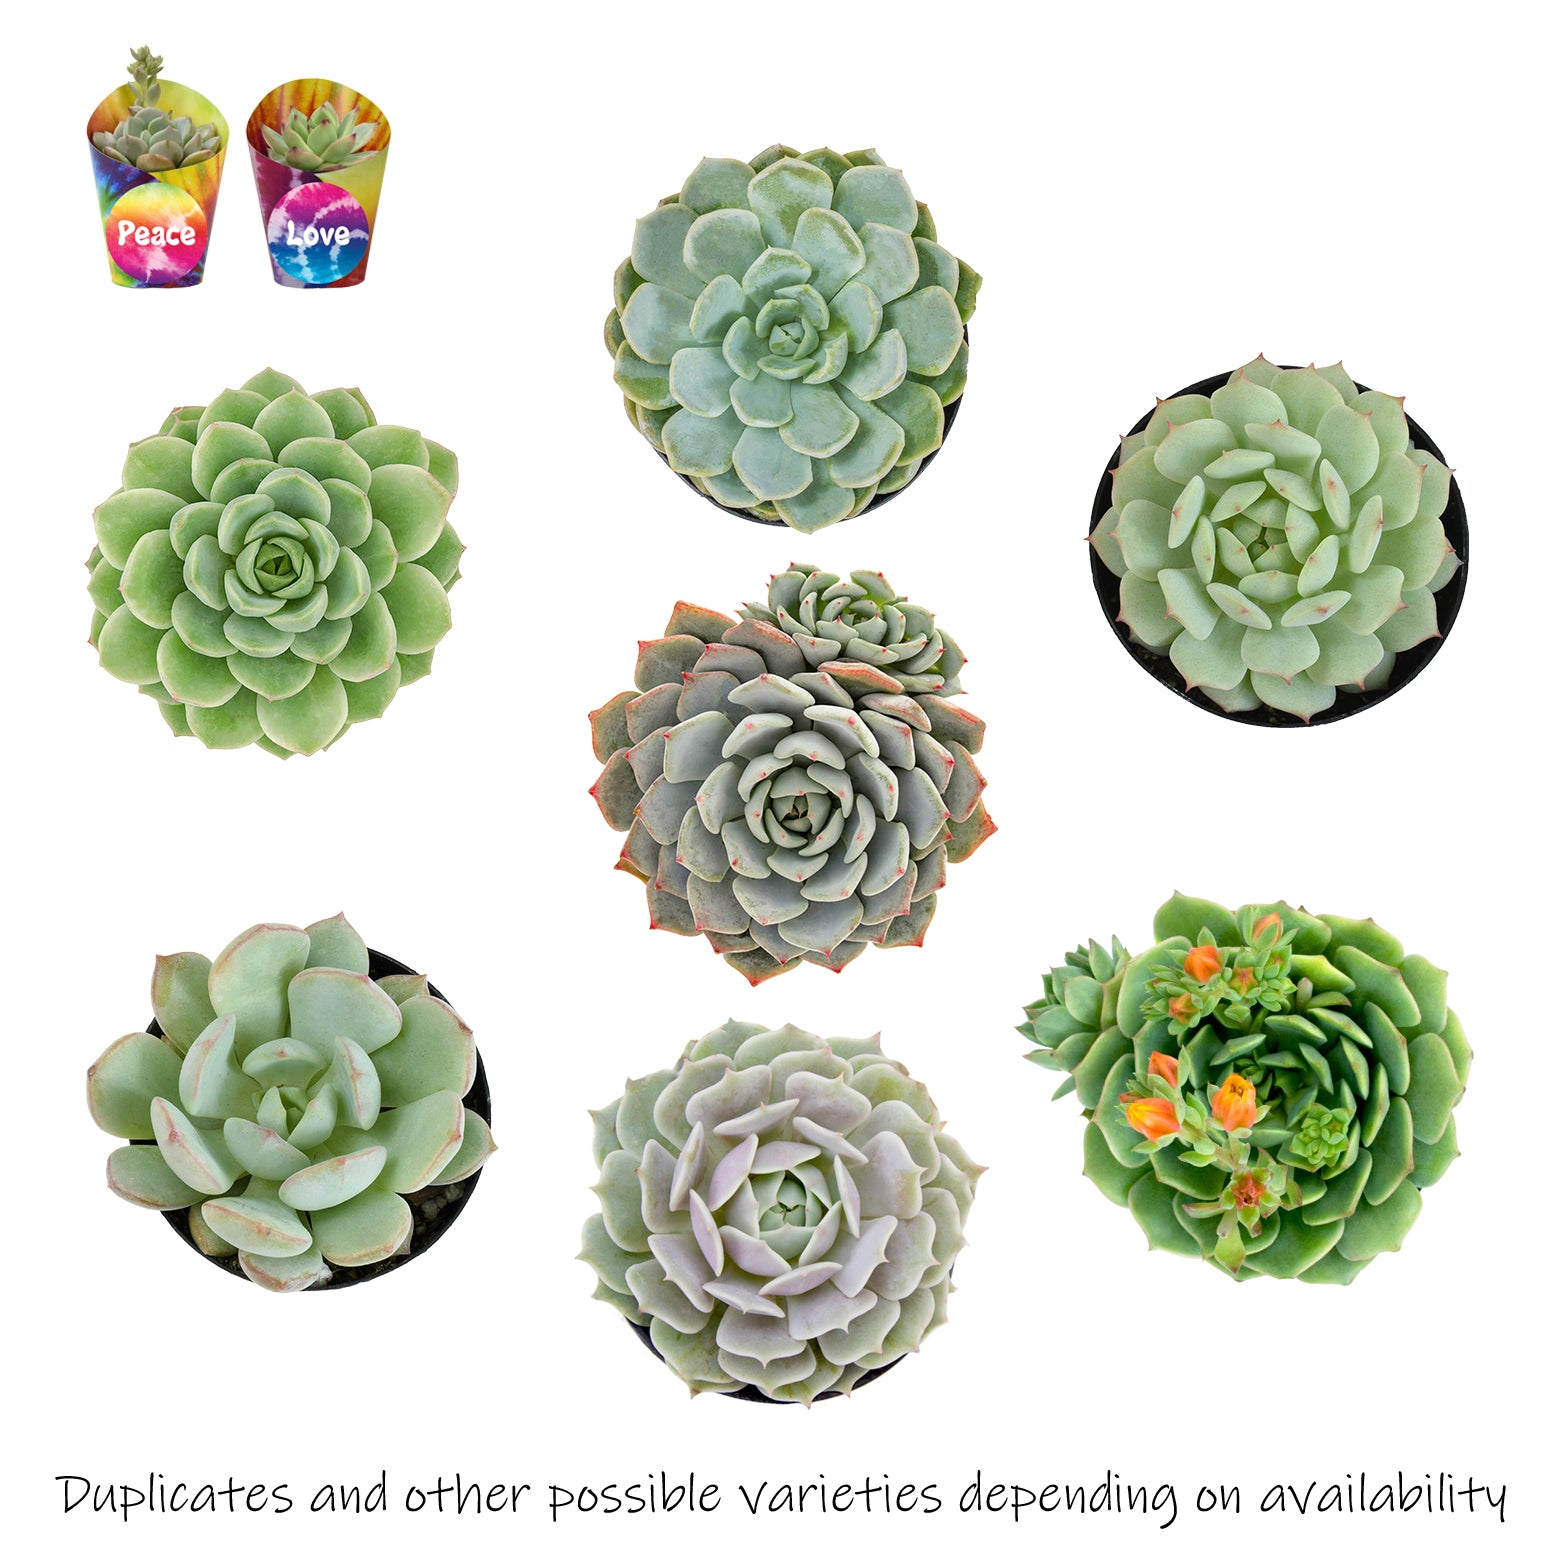 Boho Tie Dye Modern Hippie Rosette Succulent 2 Pack With To/from Gift Card